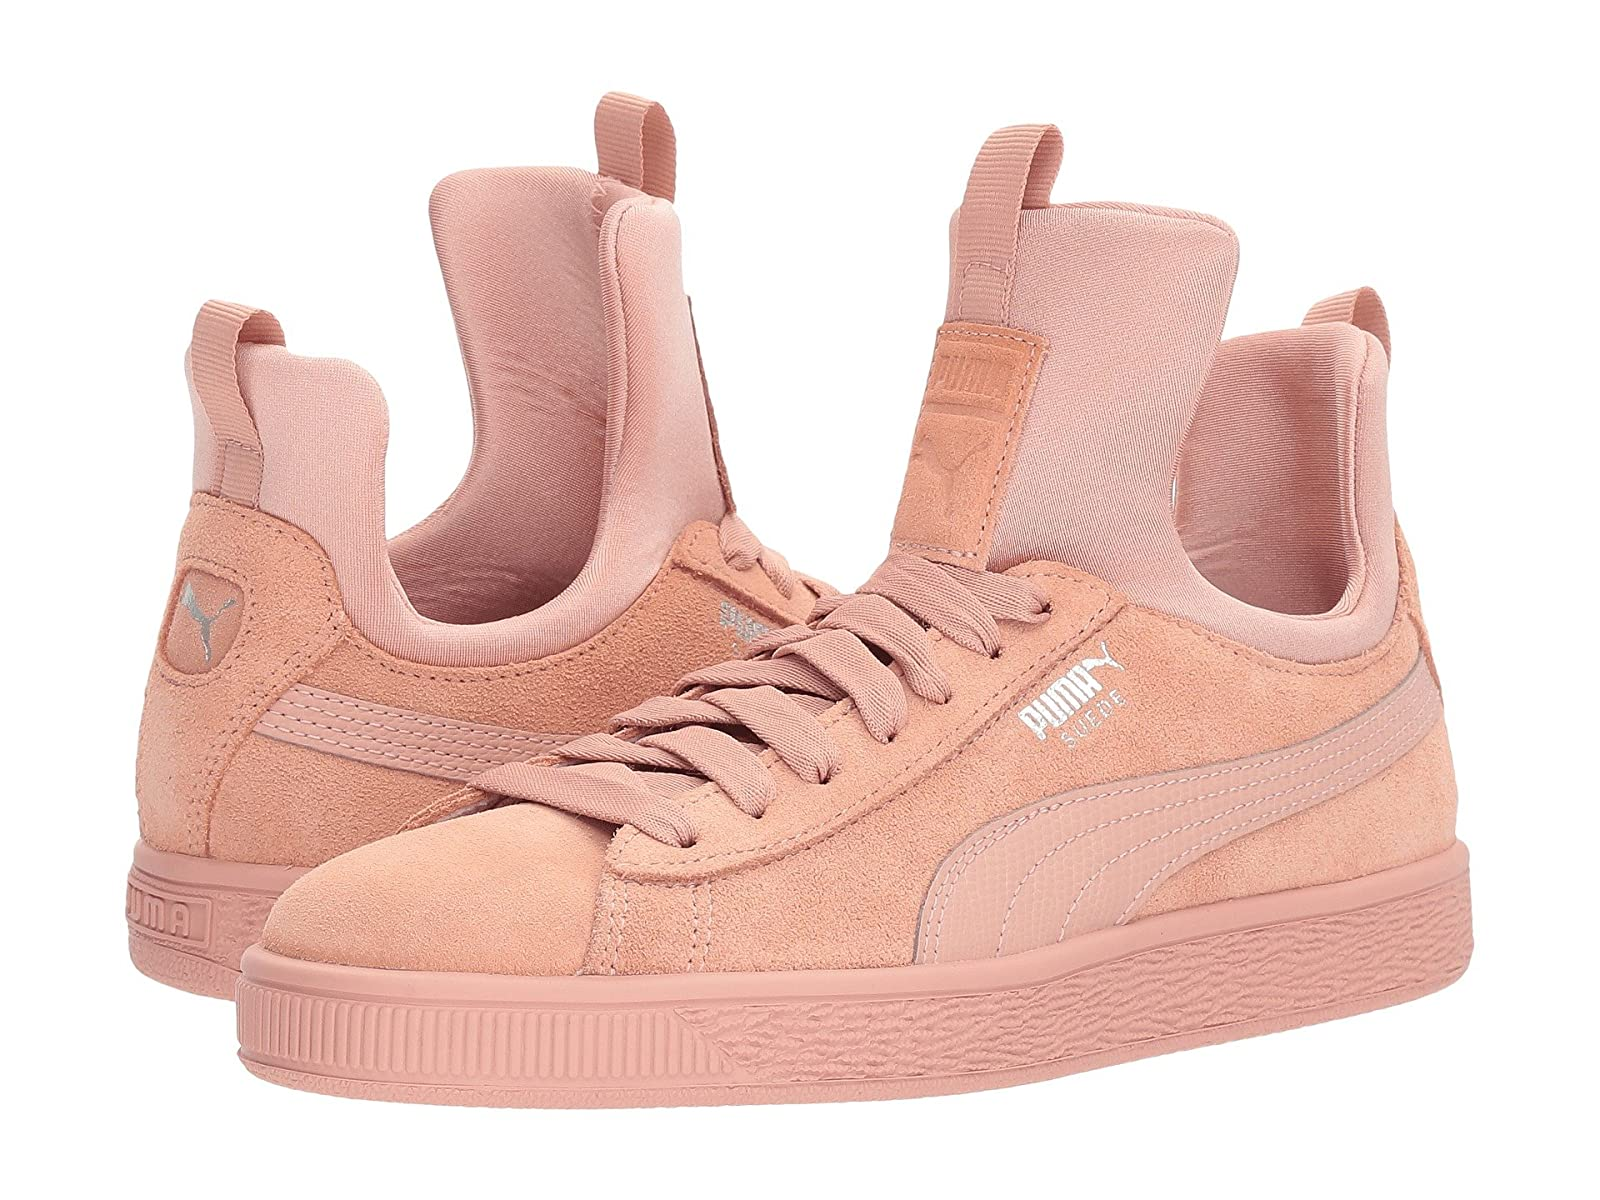 PUMA Suede FierceCheap and distinctive eye-catching shoes